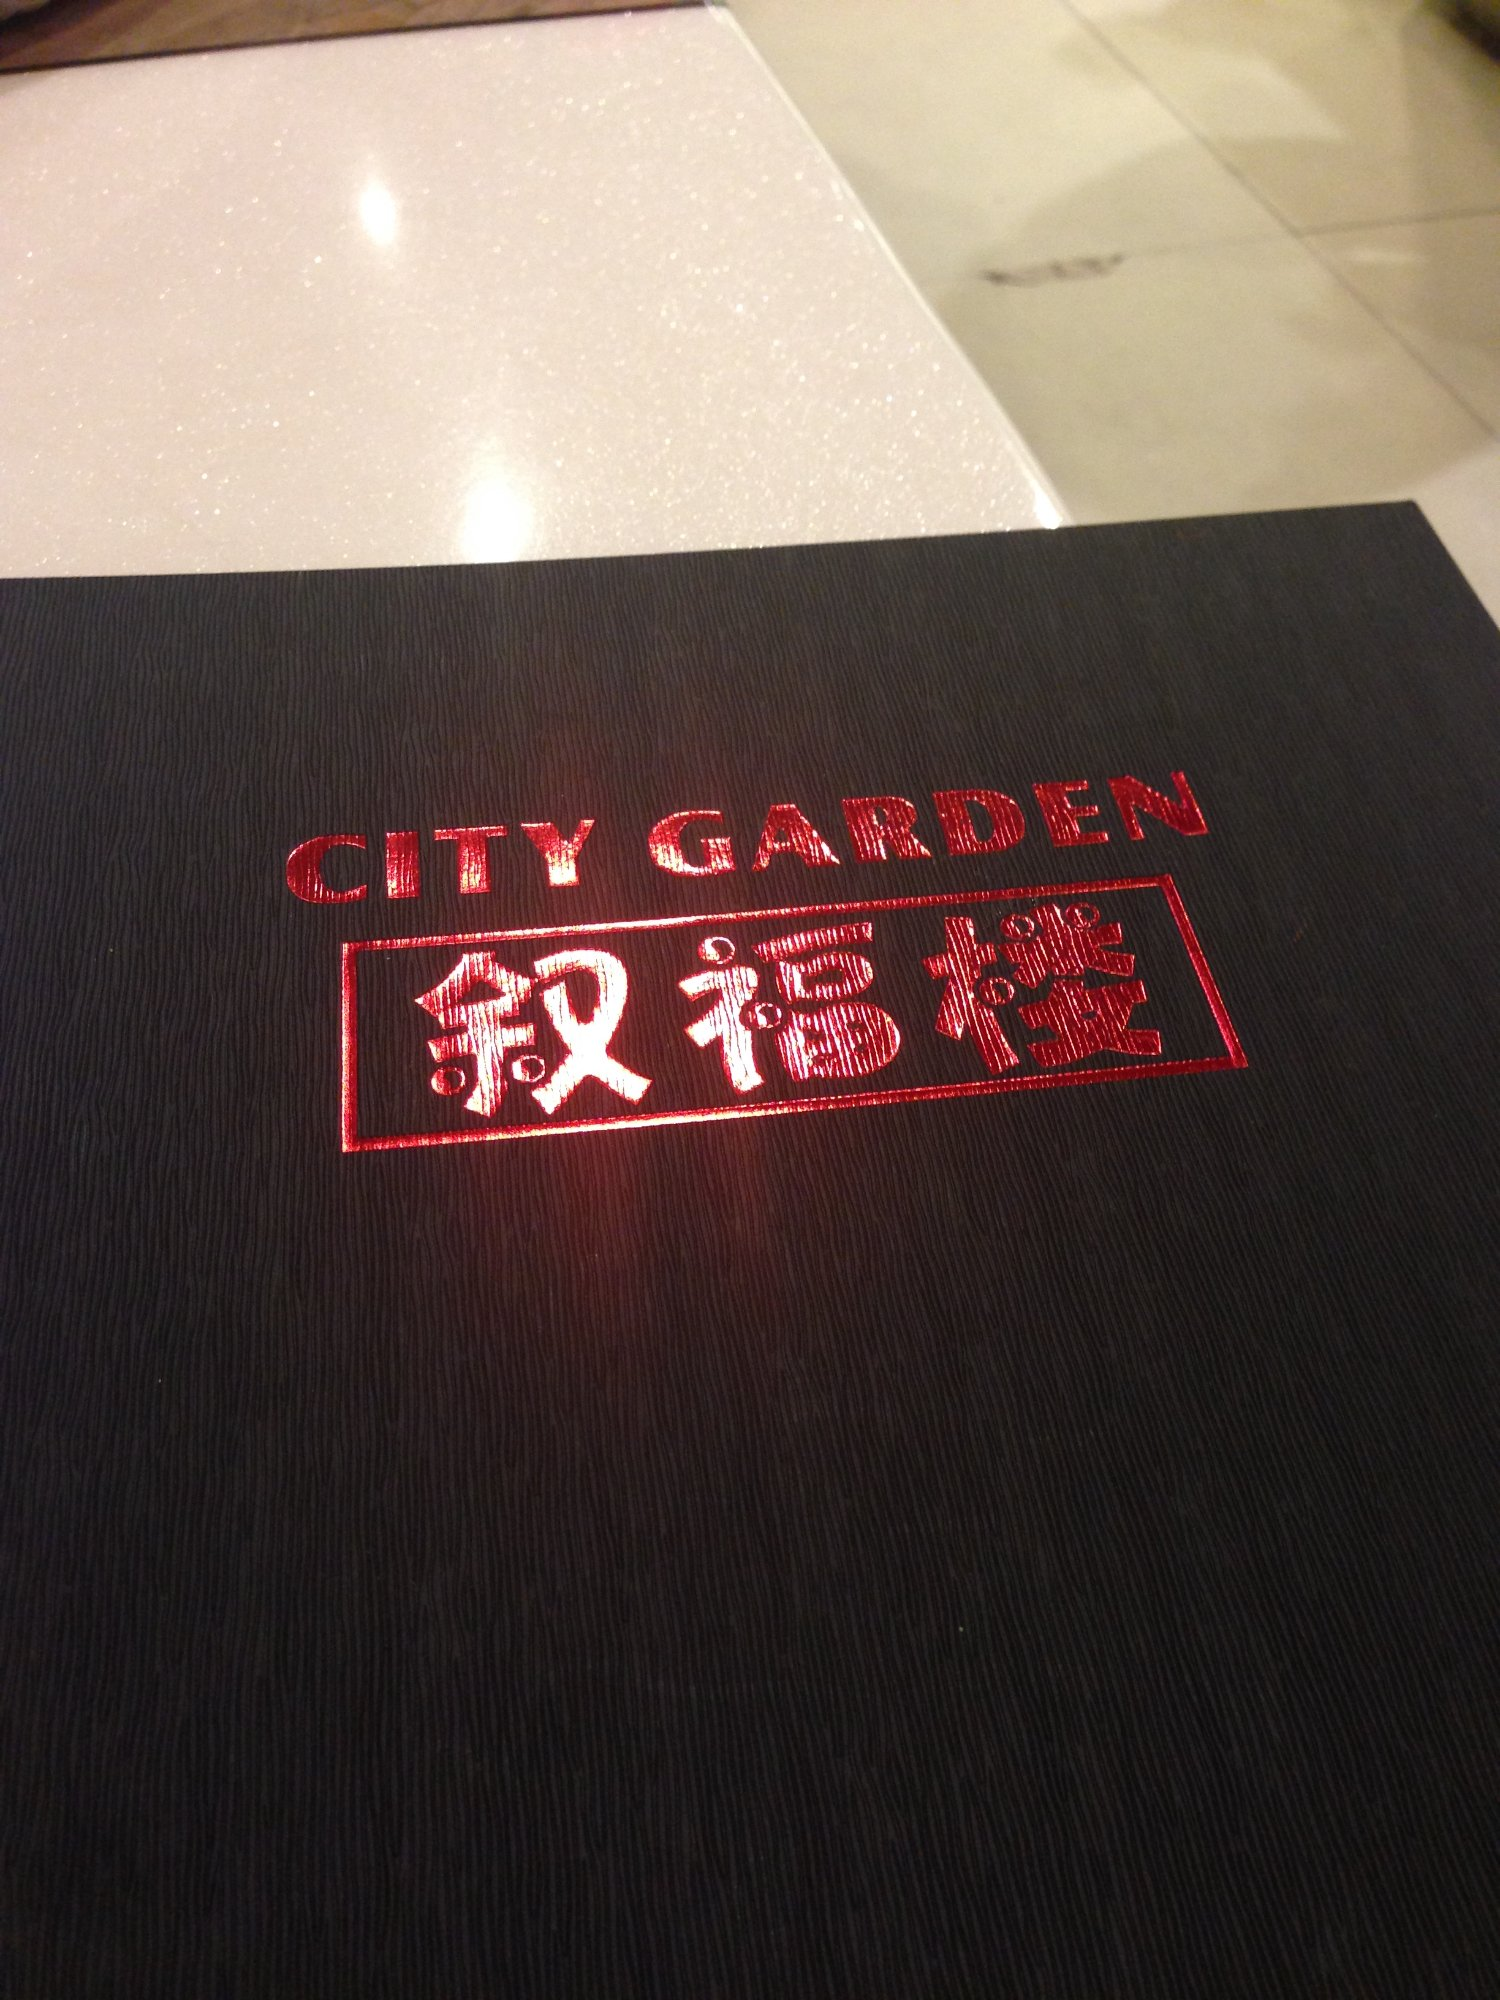 City Garden Chinese Restaurant - Pubs and Clubs